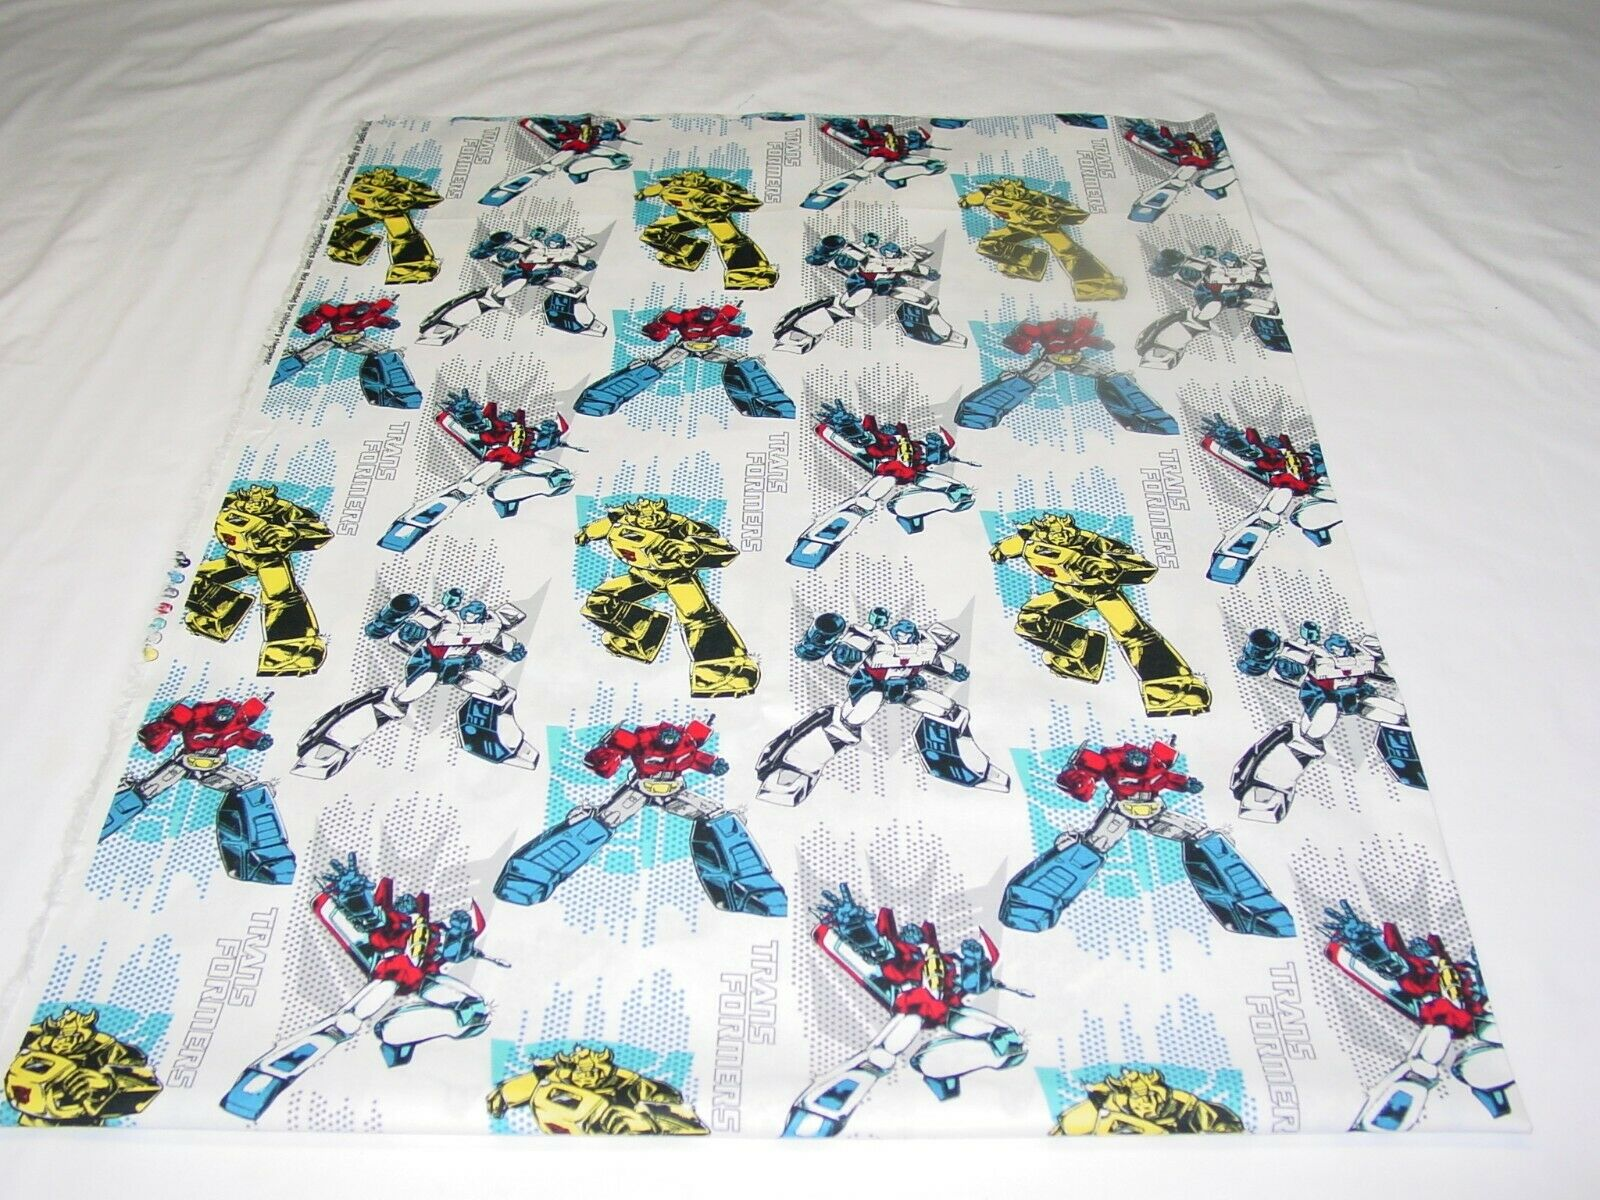 TRANSFORMERS WHITE FABRIC 100 COTTON REMNANTS LENGTH 33 X WIDTH 43  - $10.50